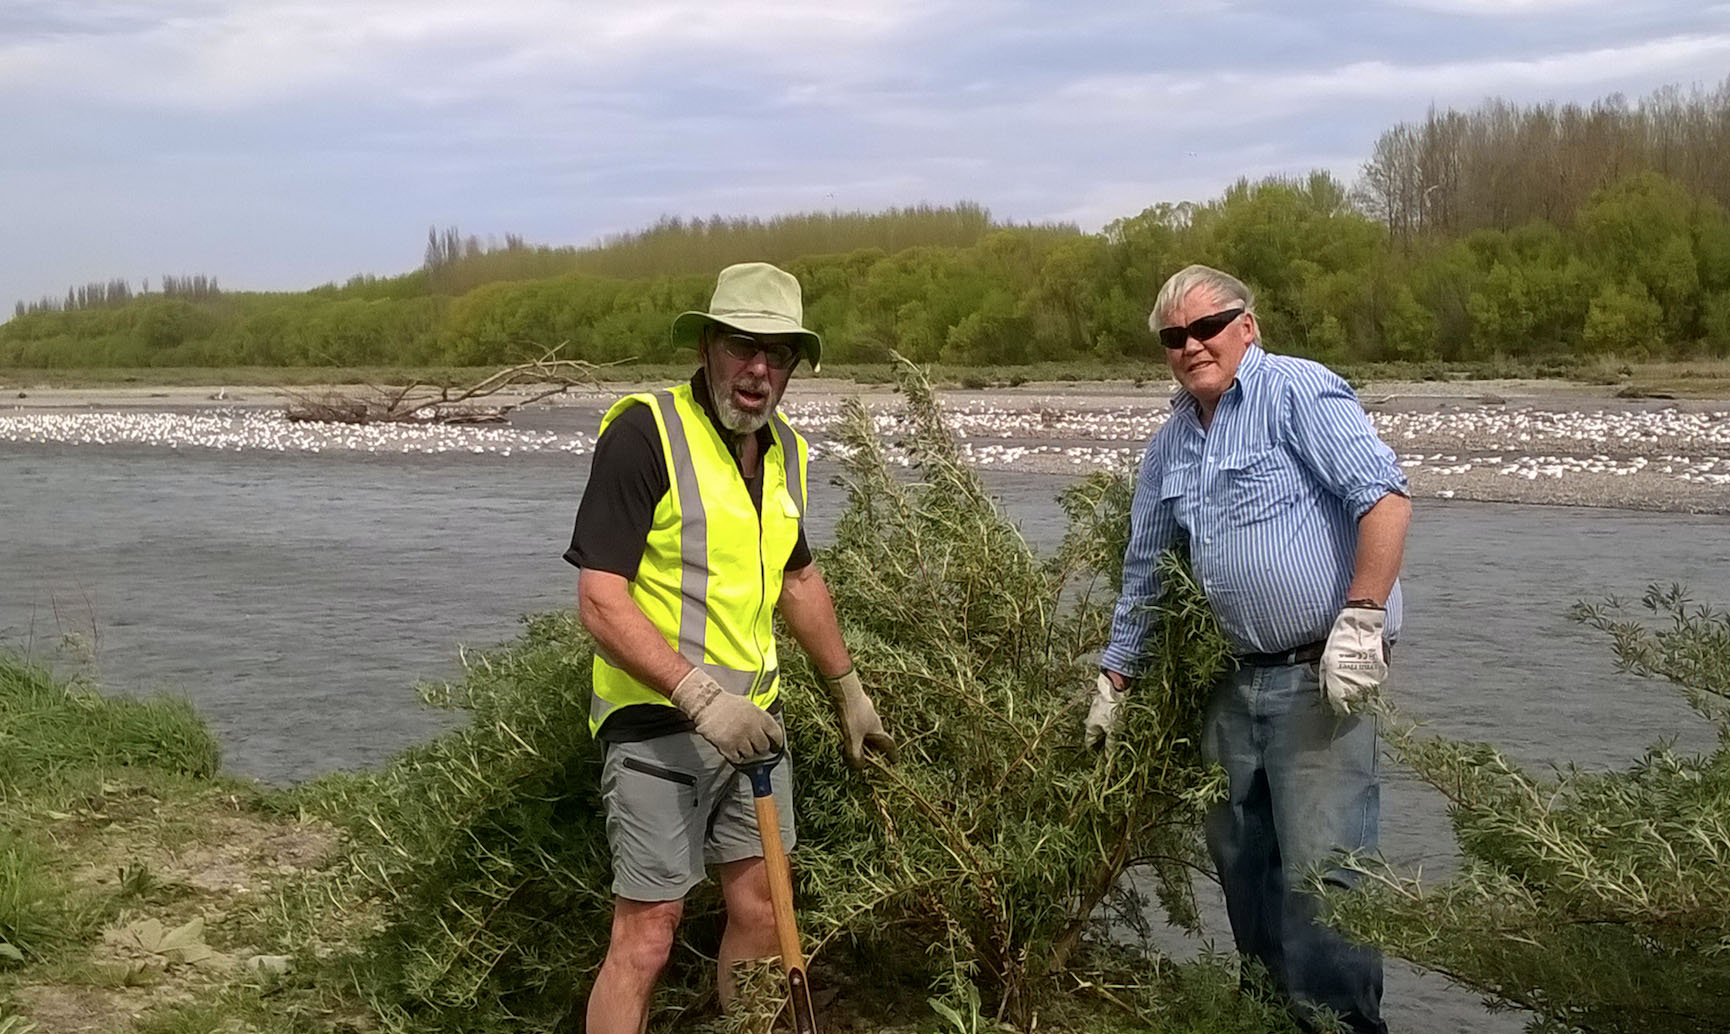 Pulling tree lupins on the Ashburton River. A colony of critically endangered back-billed gulls is trying to nest in the centre of the river. (The island was too low and flooding forced the birds to abandon their nest that year.) Photo: Don Geddes.